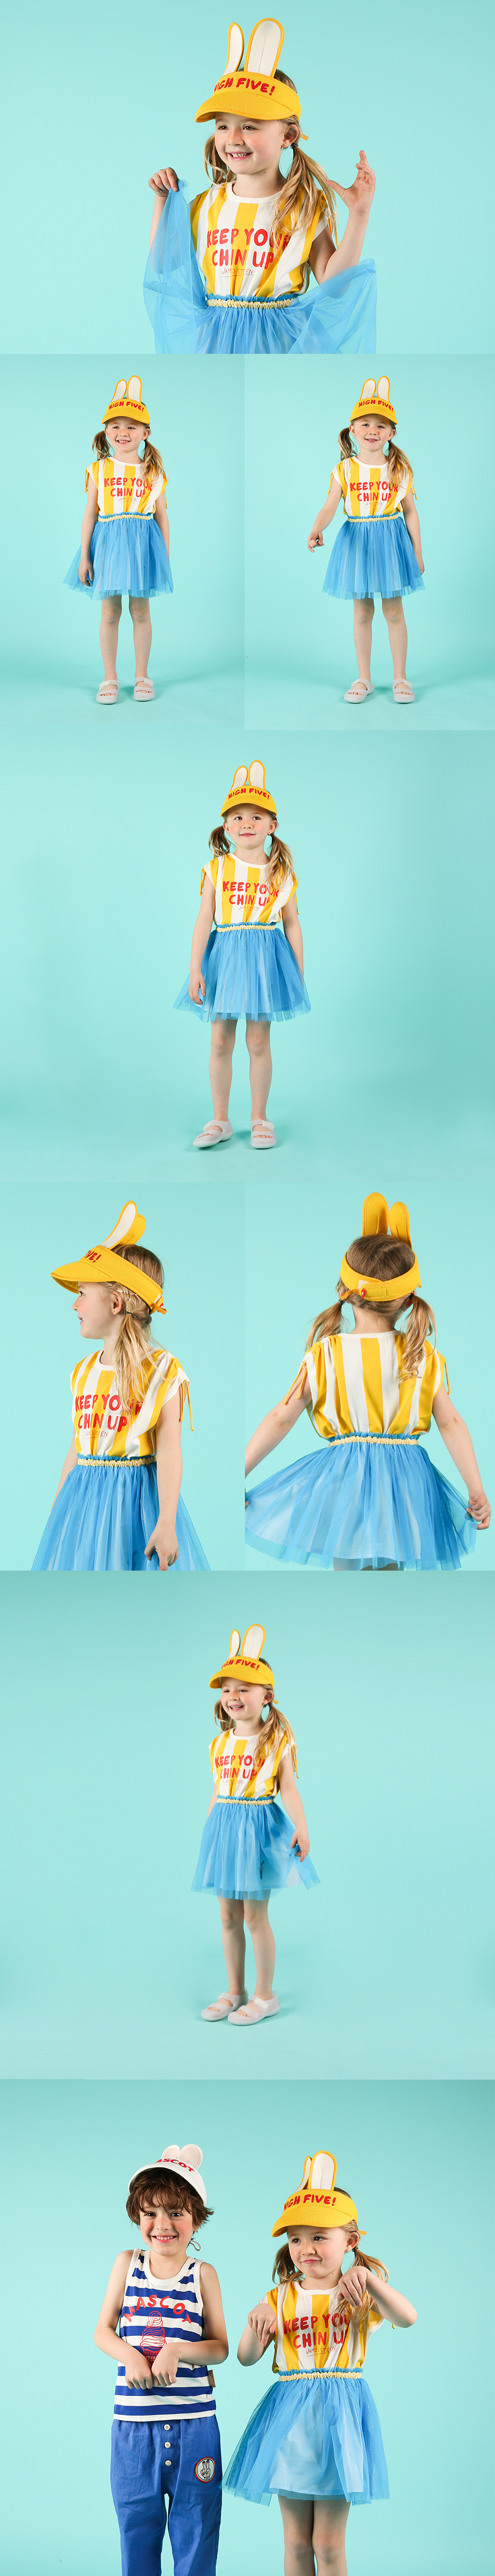 Ice cream cone tutu skirt 상세 이미지